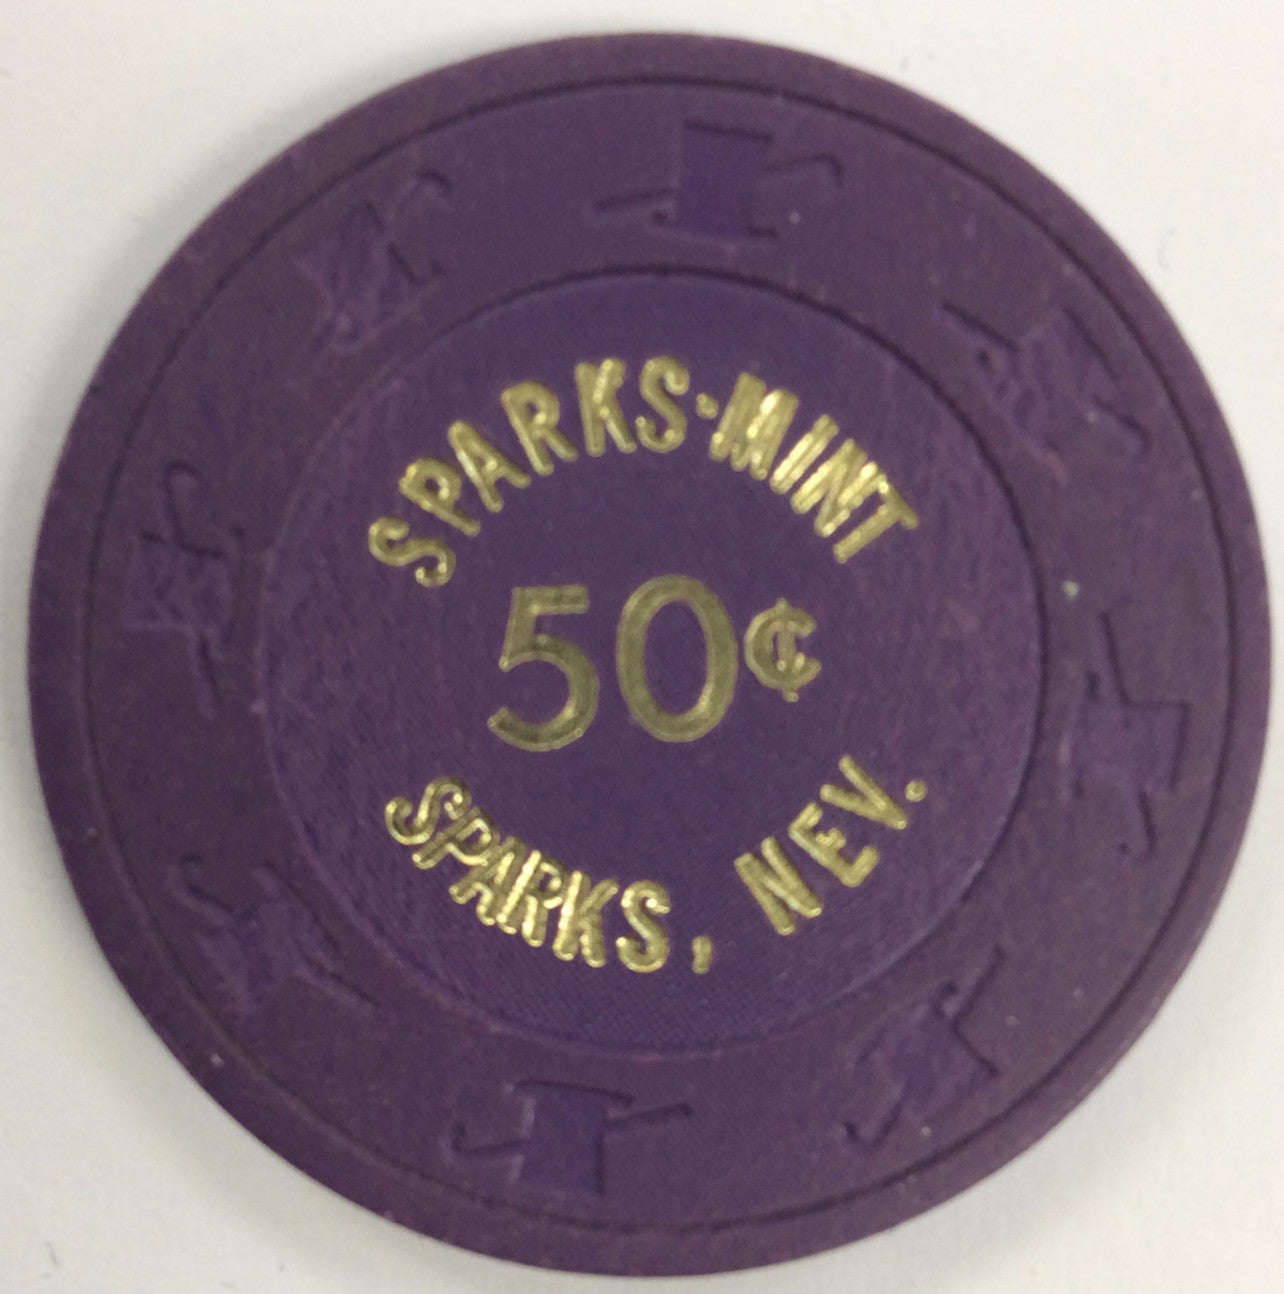 Sparks Mint 50cent (purple) chip - Spinettis Gaming